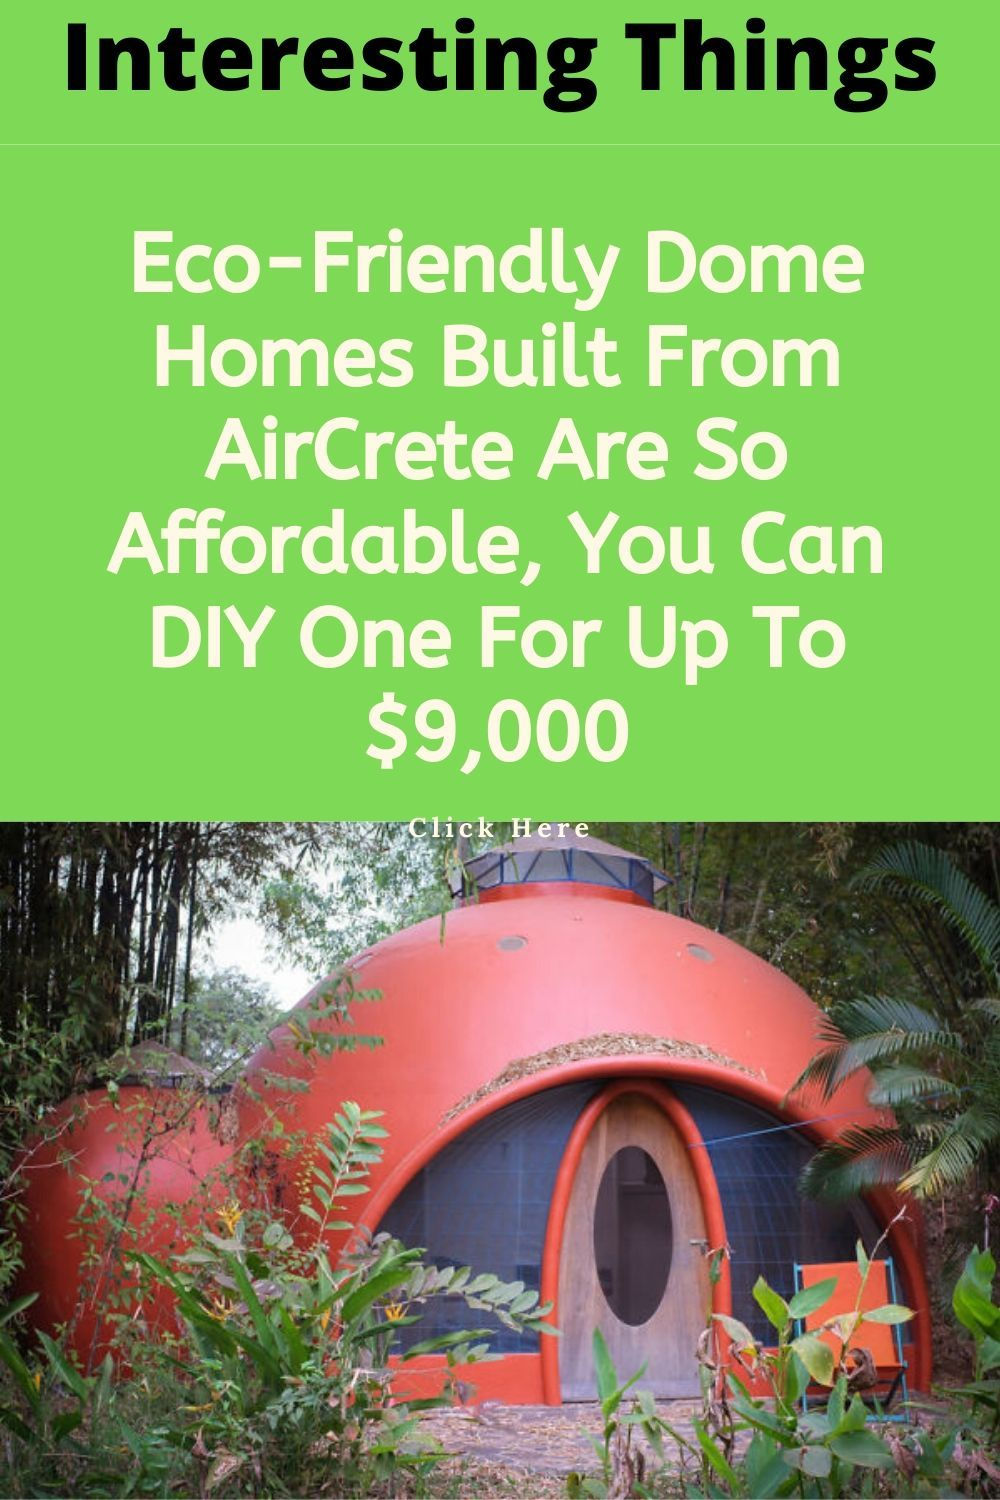 Eco Friendly Dome Homes Built From Aircrete Are So Affordable You Can Diy One For Up To 9 000 In 2020 Eco Friendly At Home Workout Plan Friendly